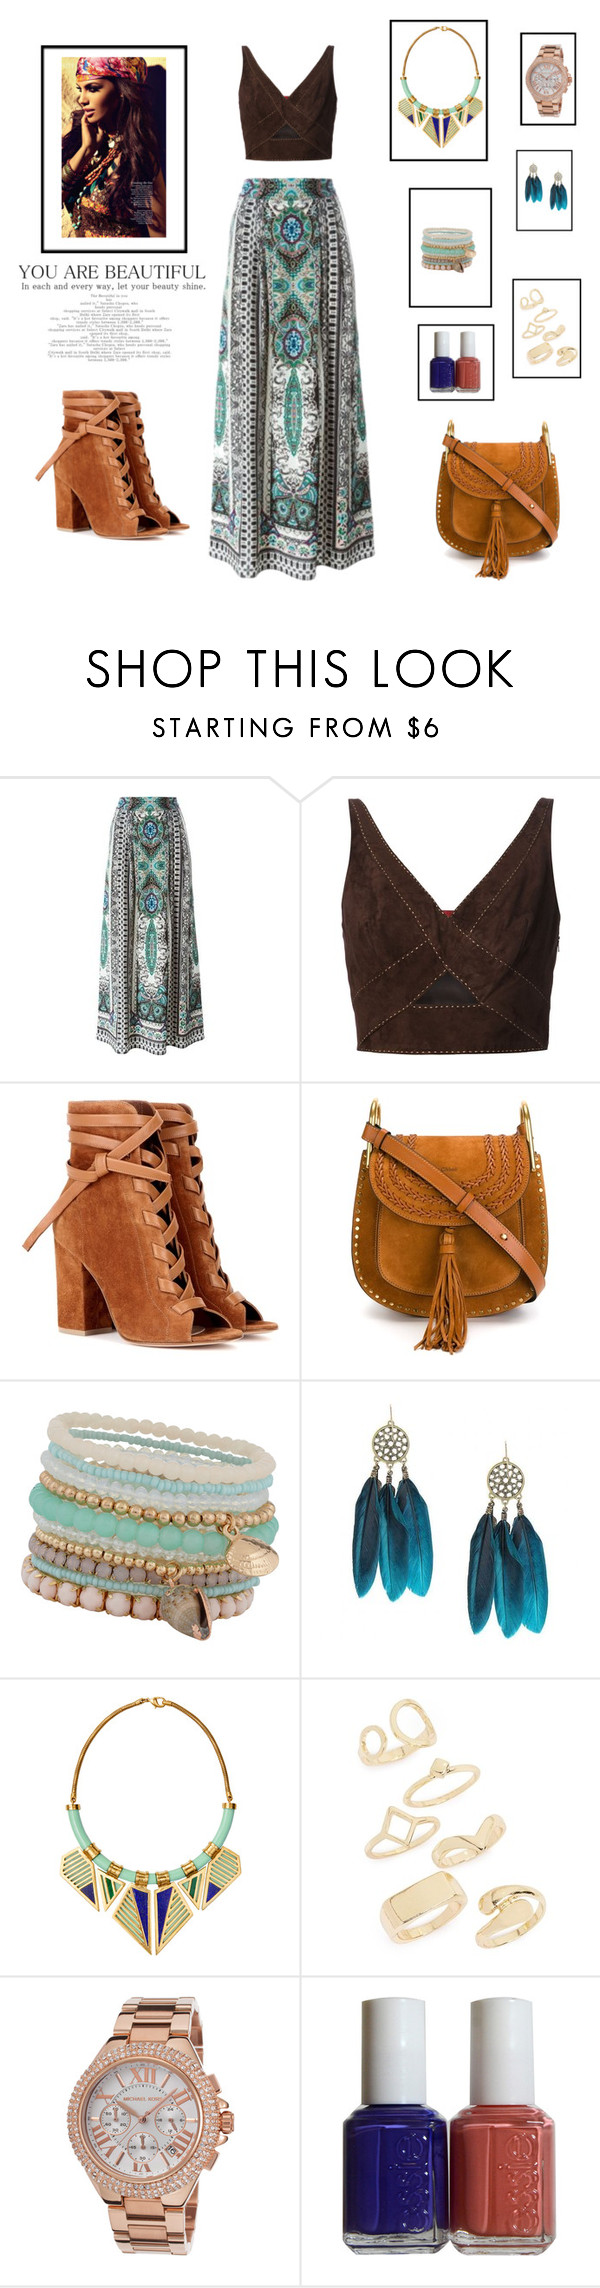 """The walk of the gypsy"" by cori-felton ❤ liked on Polyvore featuring Etro, Tamara Mellon, Gianvito Rossi, Chloé, ALDO, A Peace Treaty, Topshop, Michael Kors and Essie"